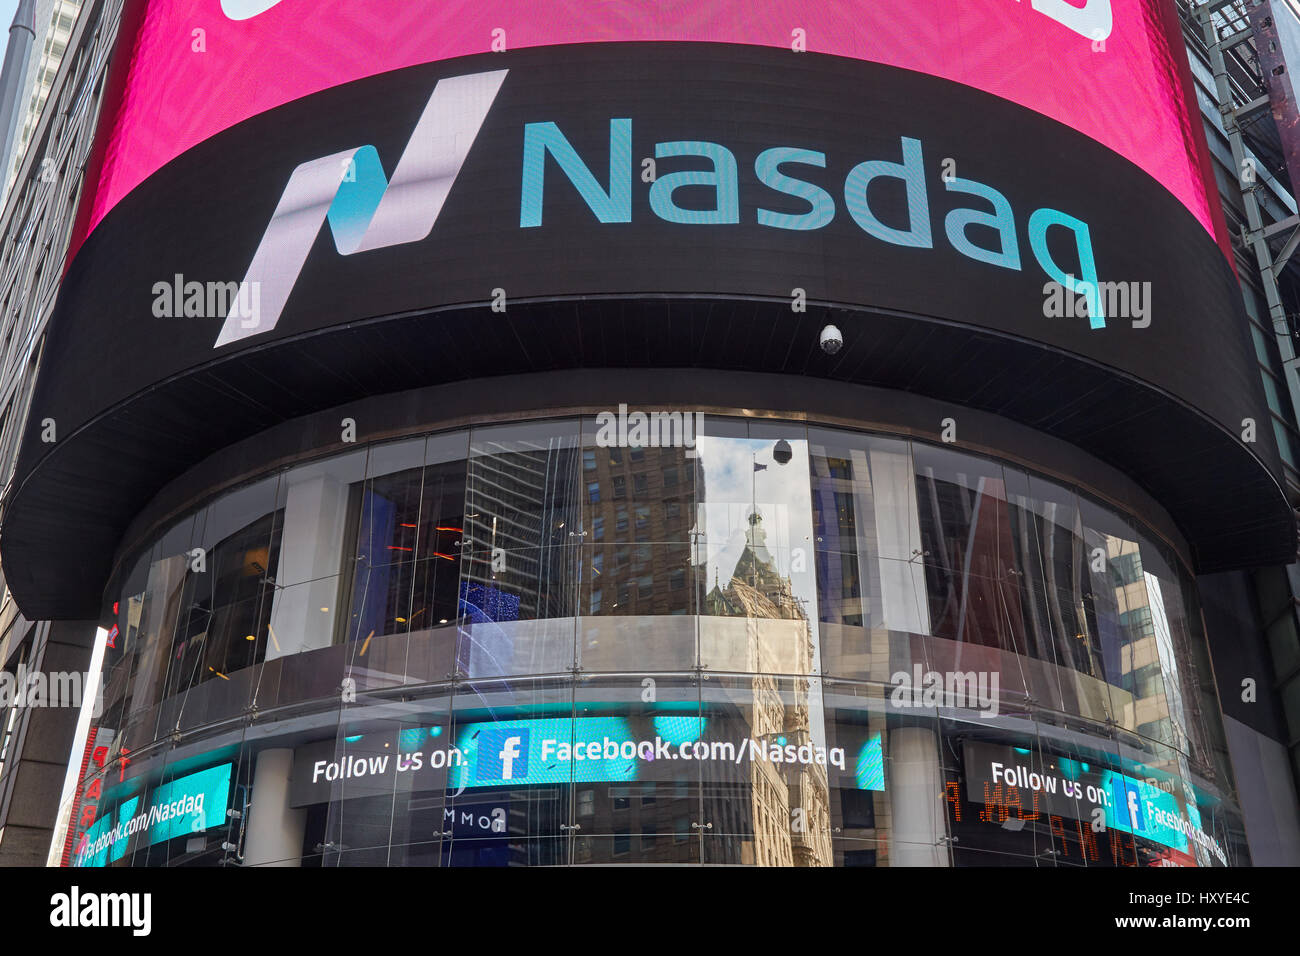 Nasdaq Marketsite in 4 Times Square in New York. This is the marketing presence of the Nasdaq stock market. - Stock Image